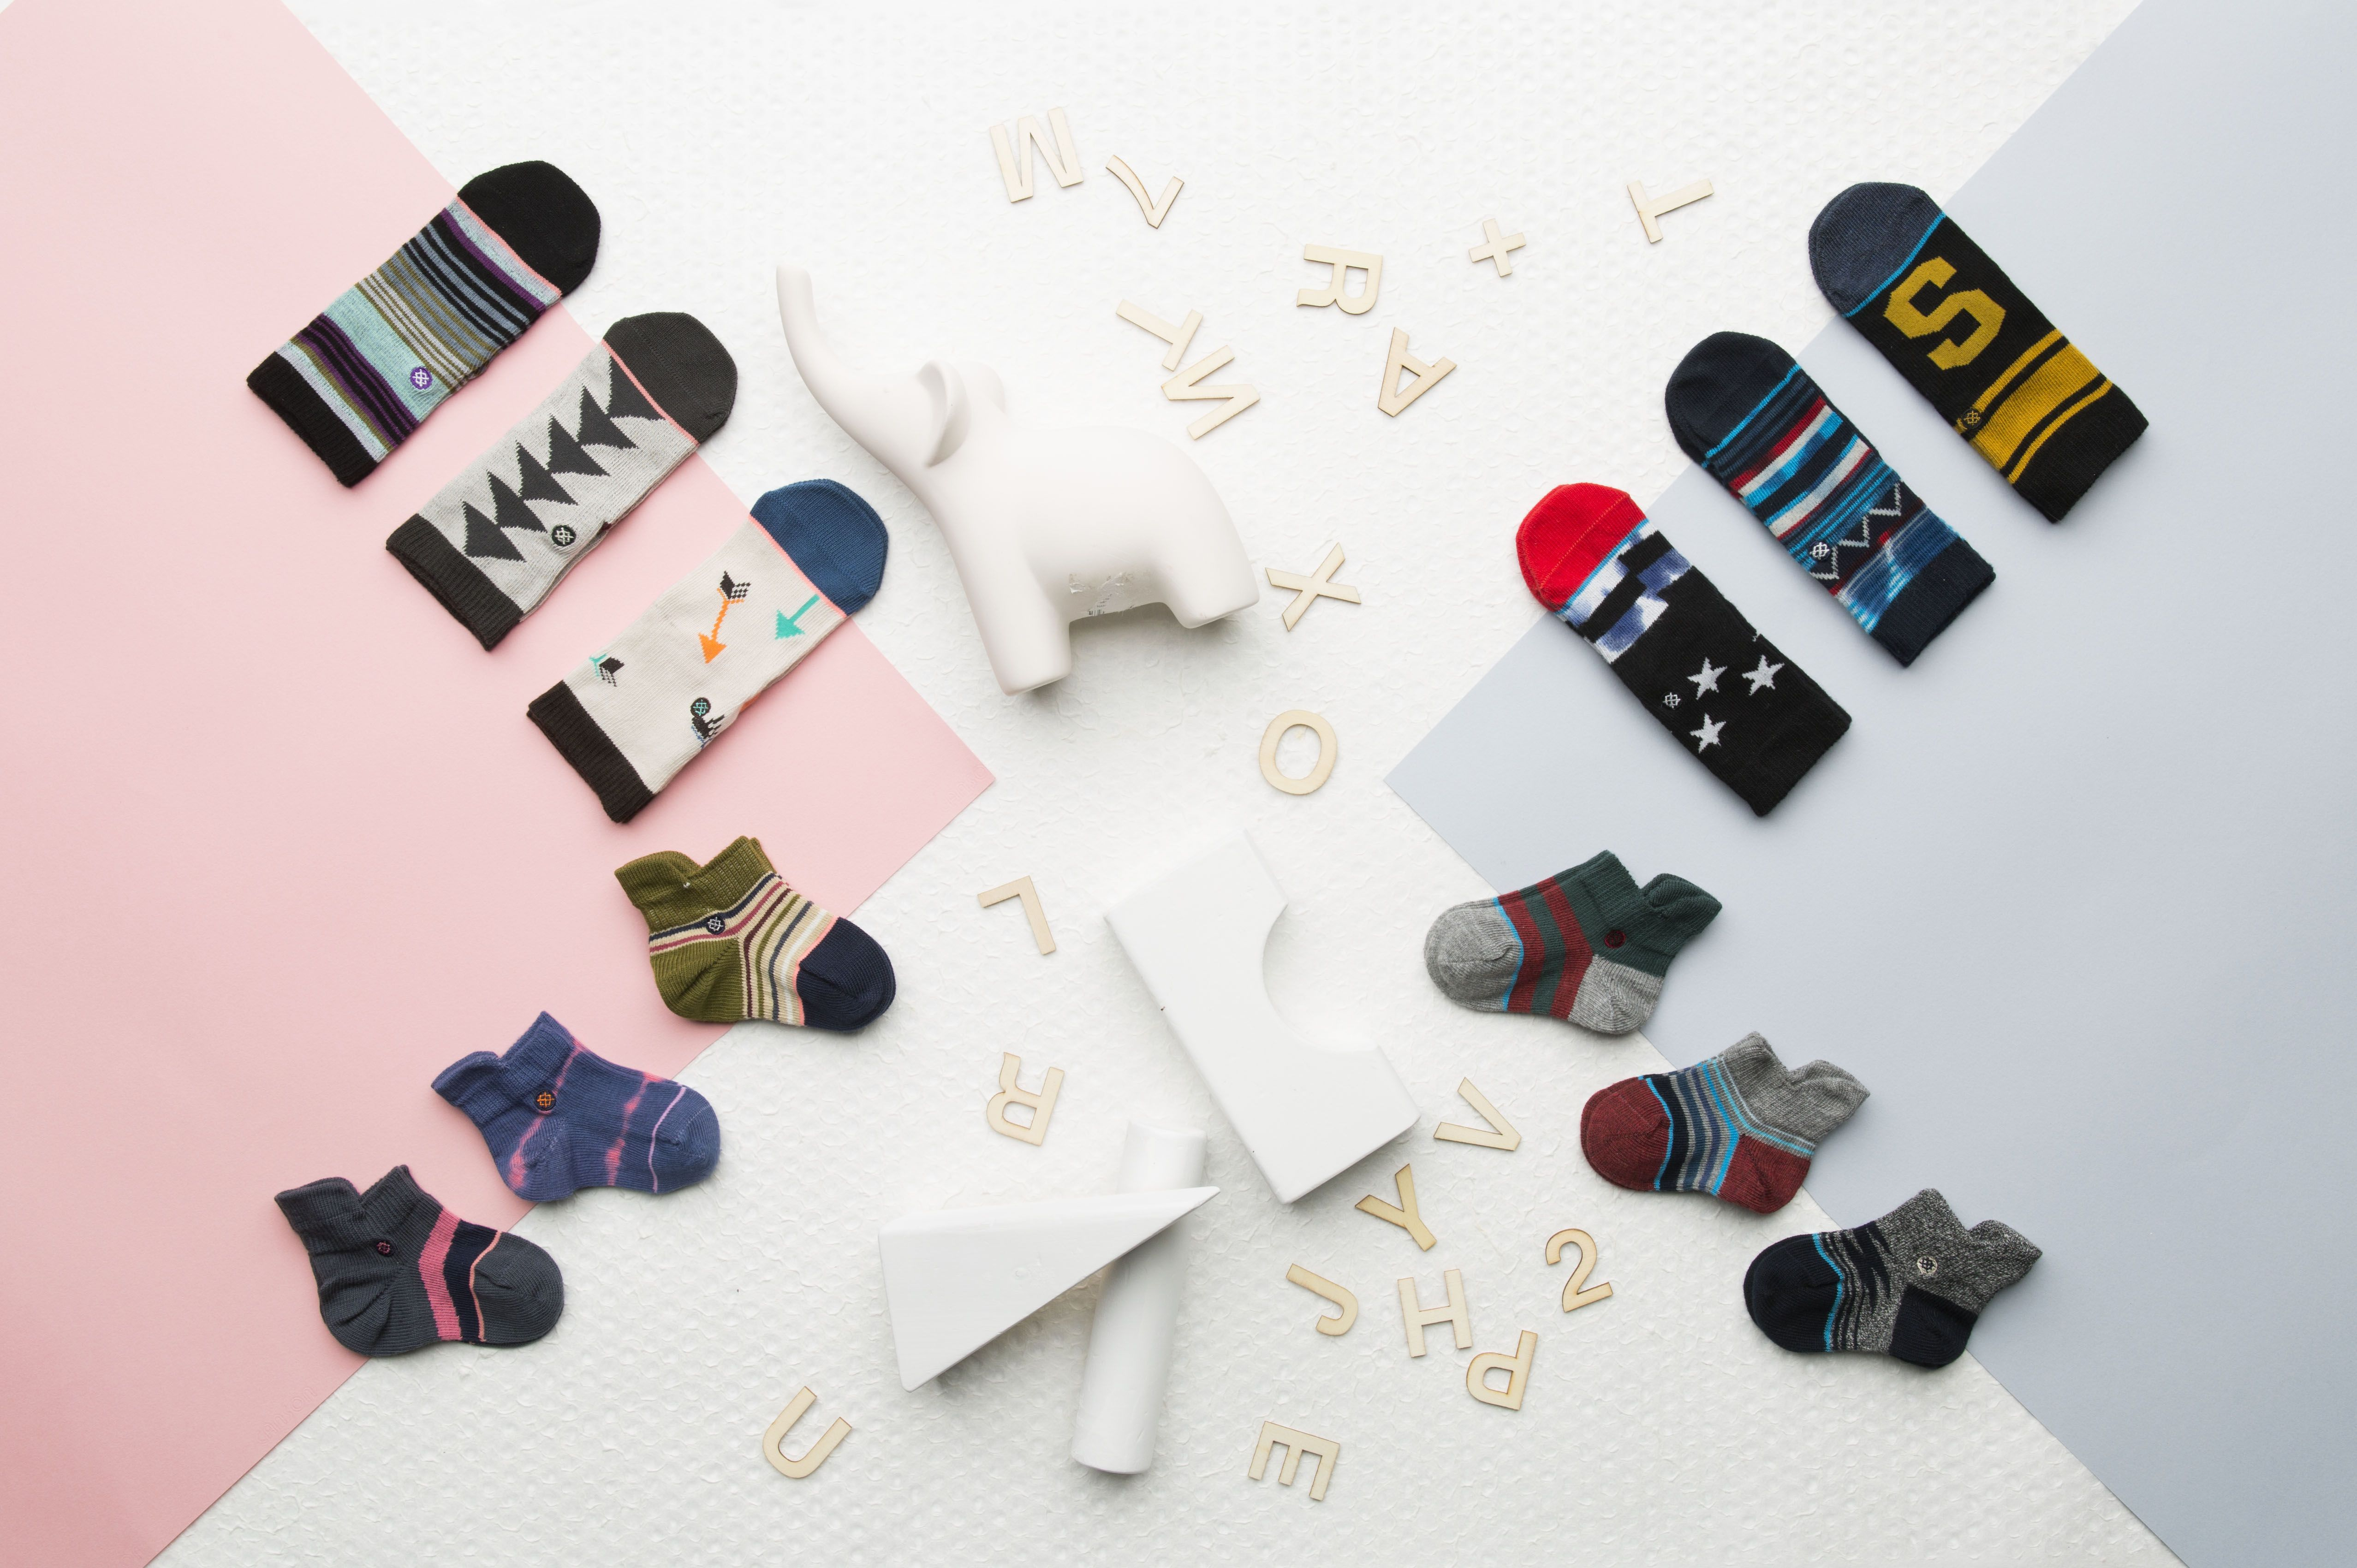 Stance Baby socks treat the young ones